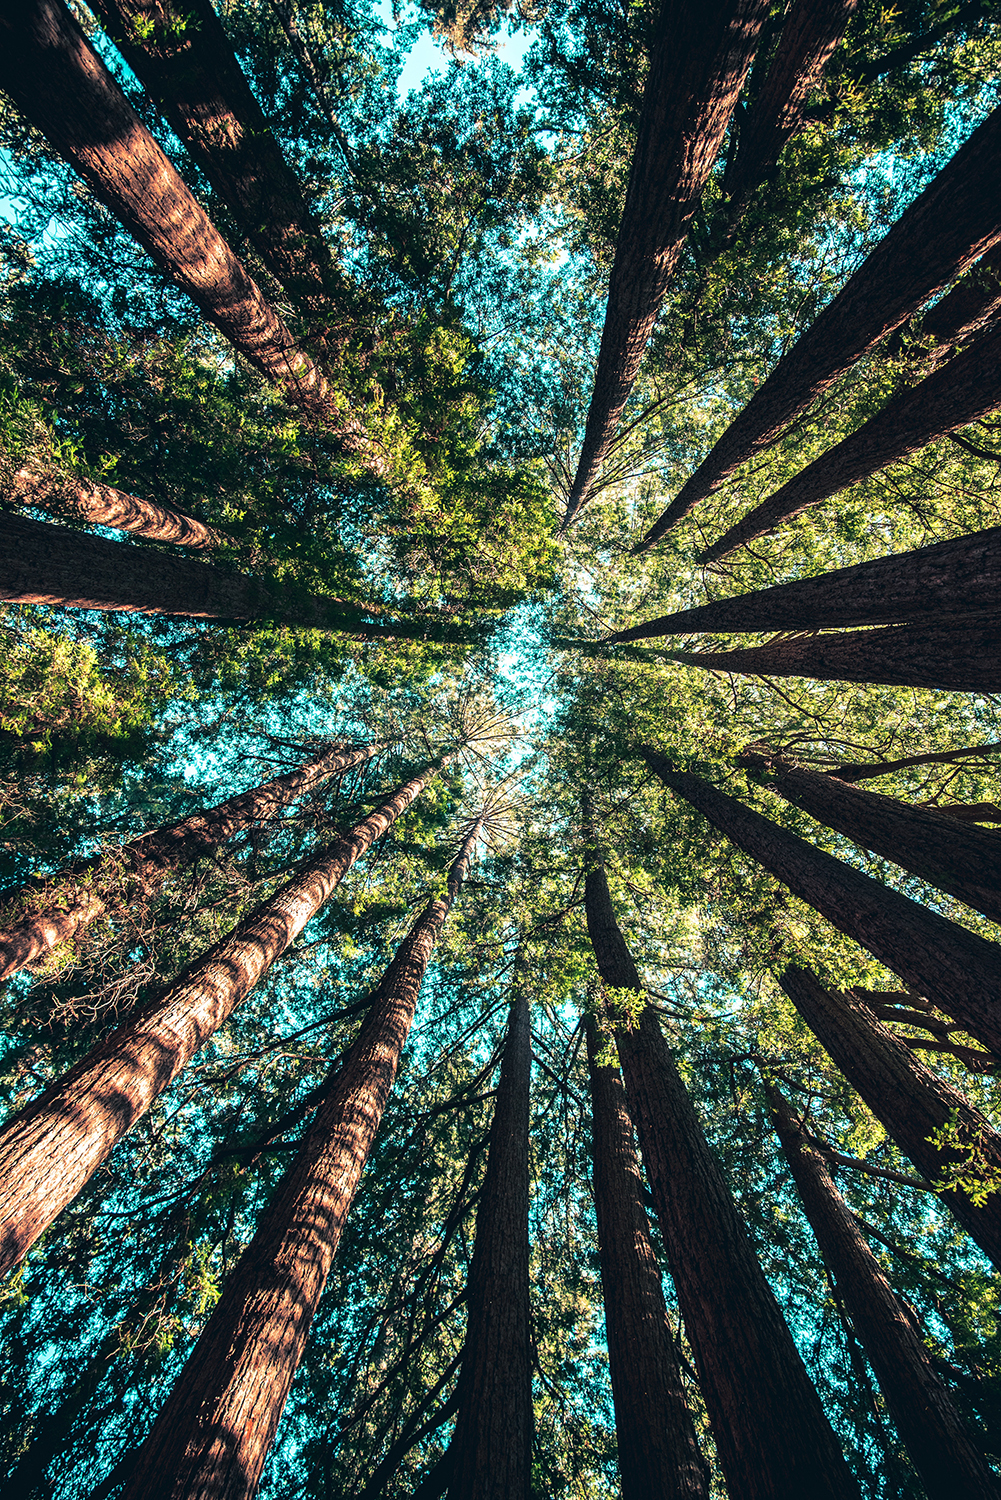 Looking up to canopy of pine trees